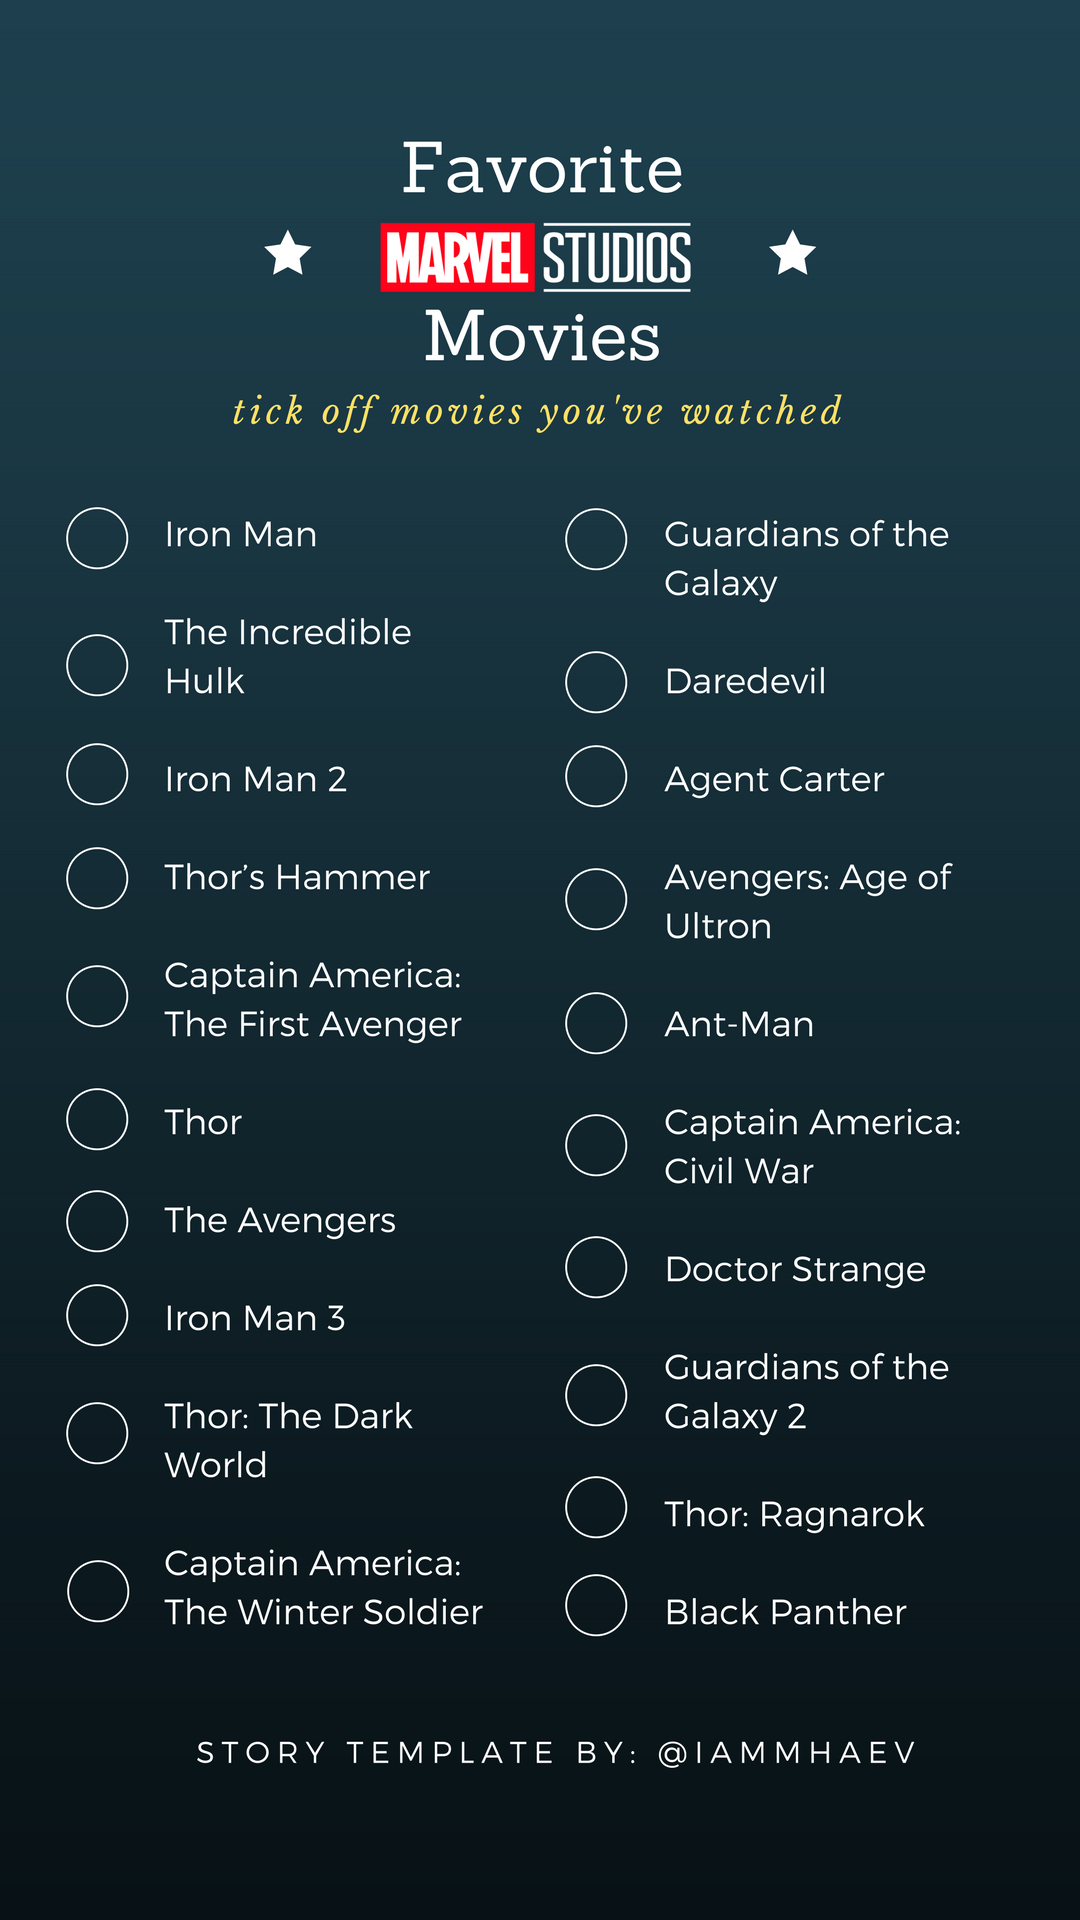 Favorite Marvel Movies Instagram Story Template | Maratón de ...